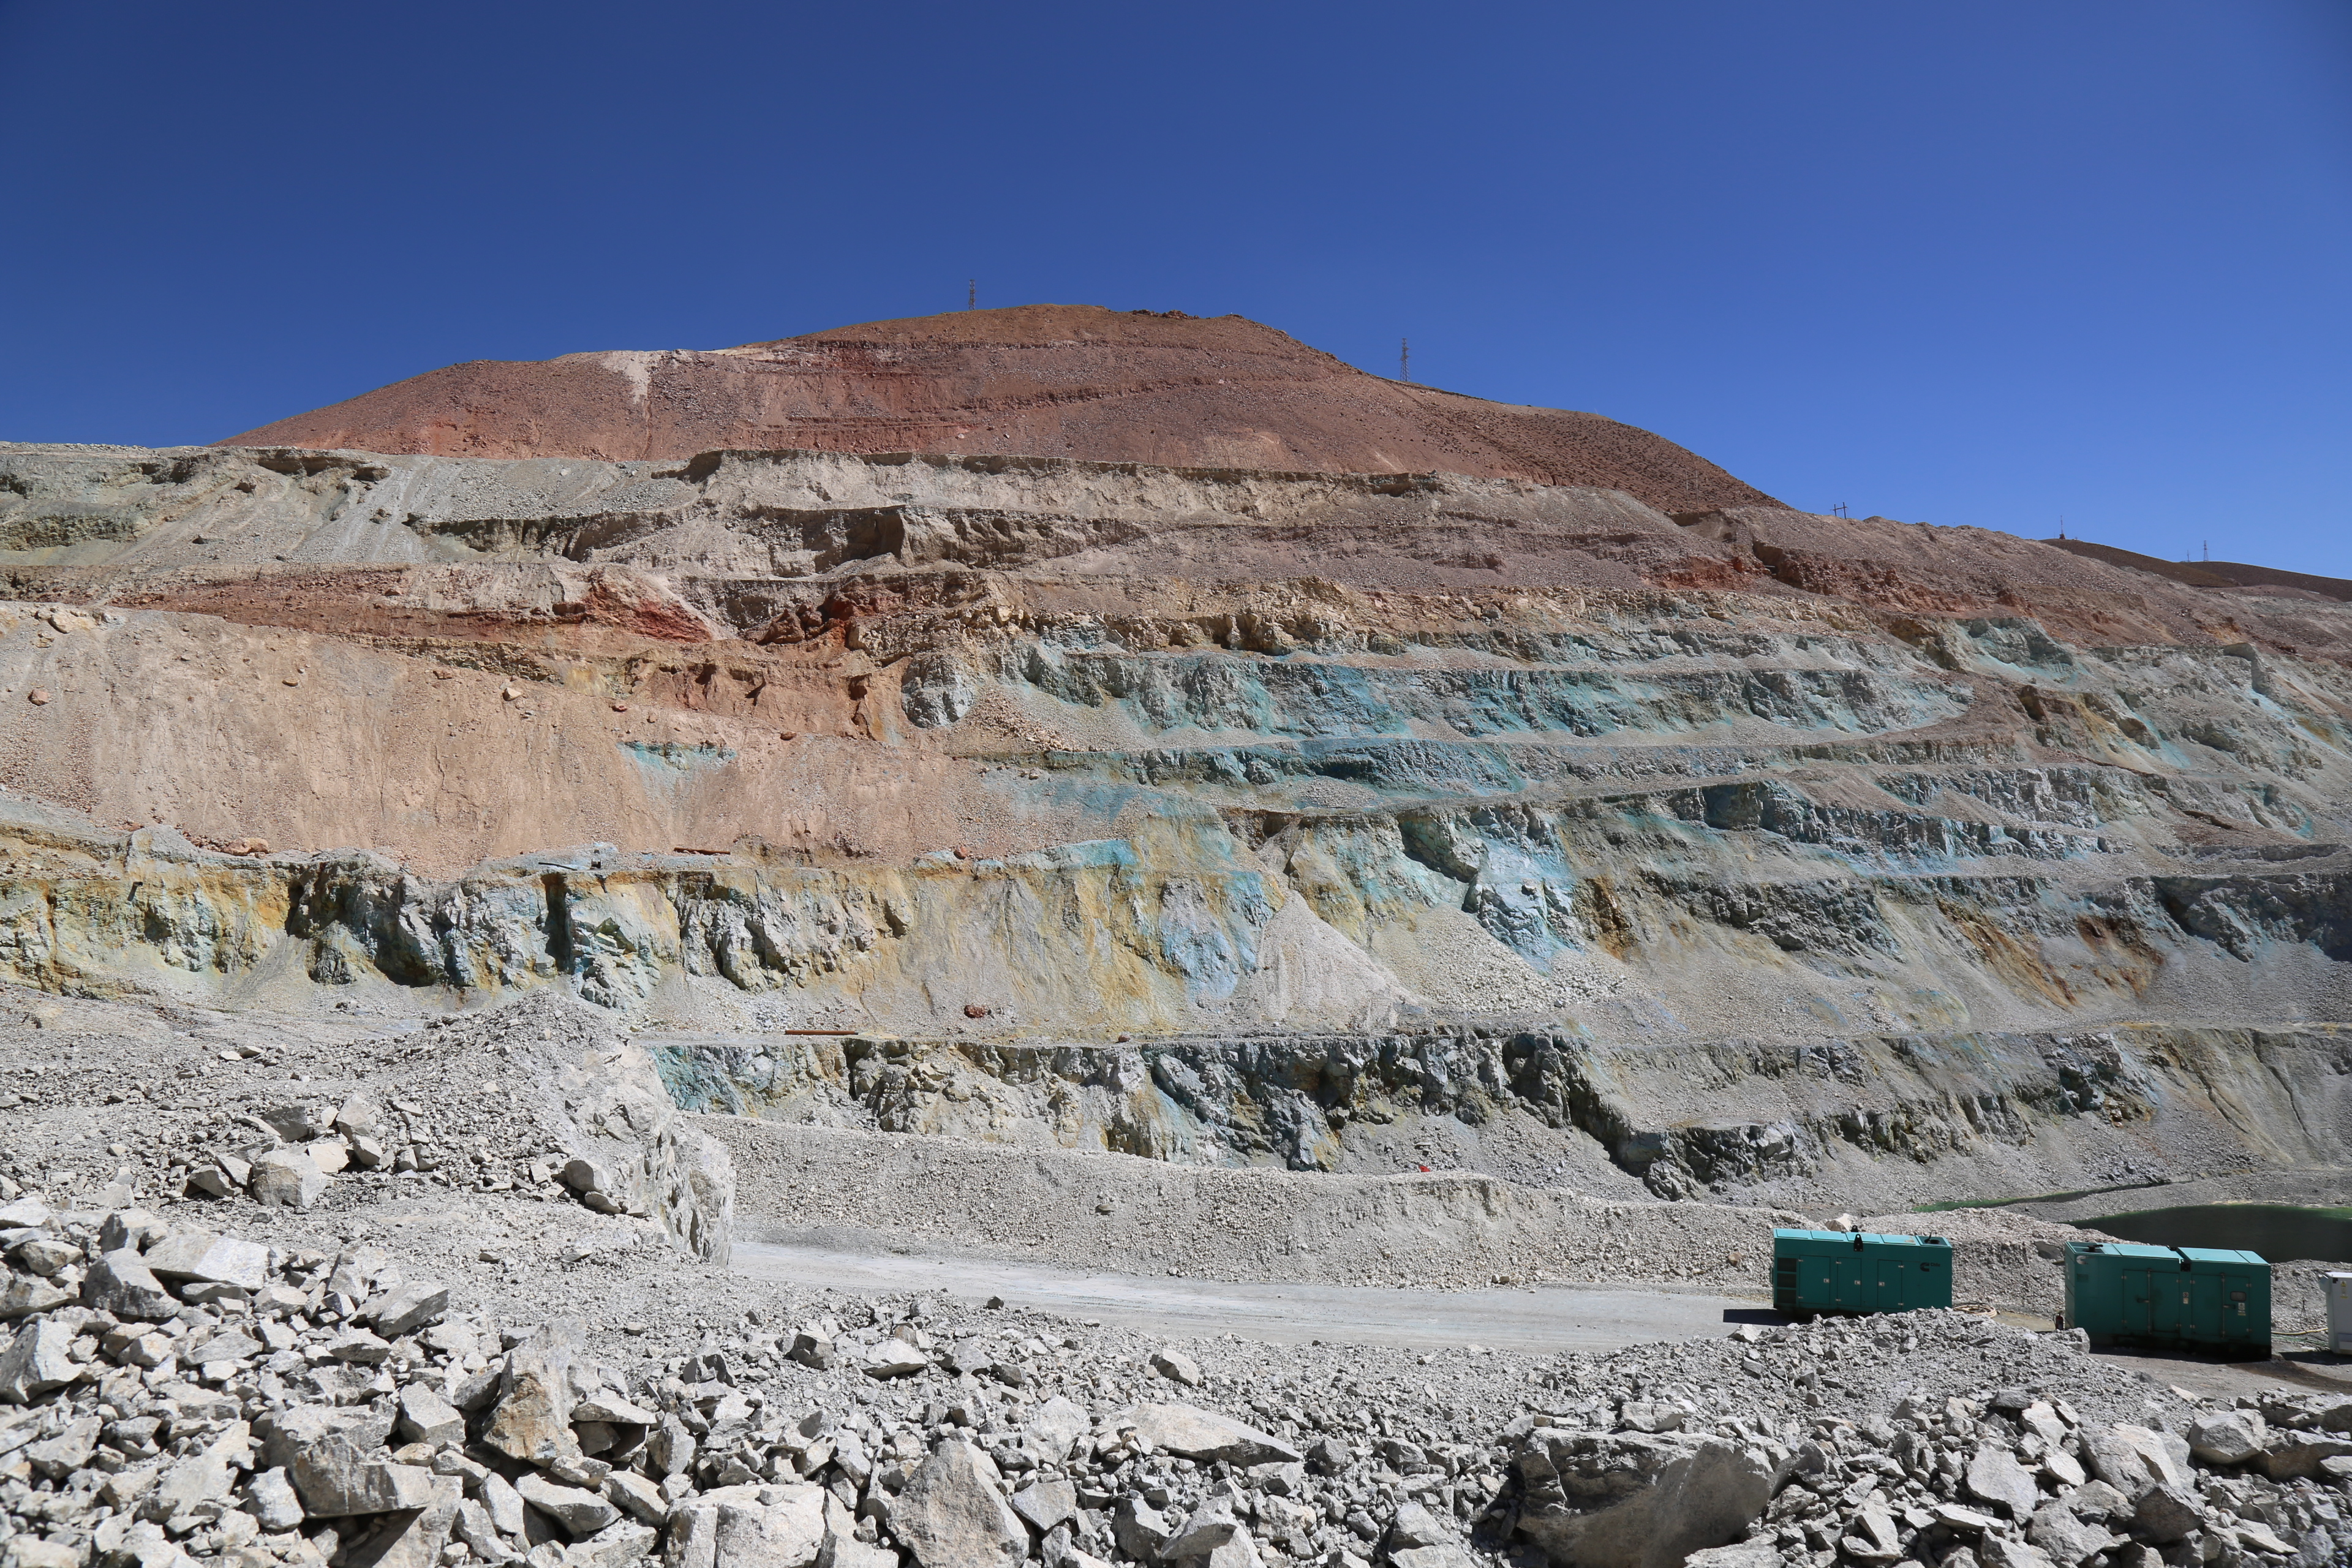 Highwall mining and highwall analysis can be challenging